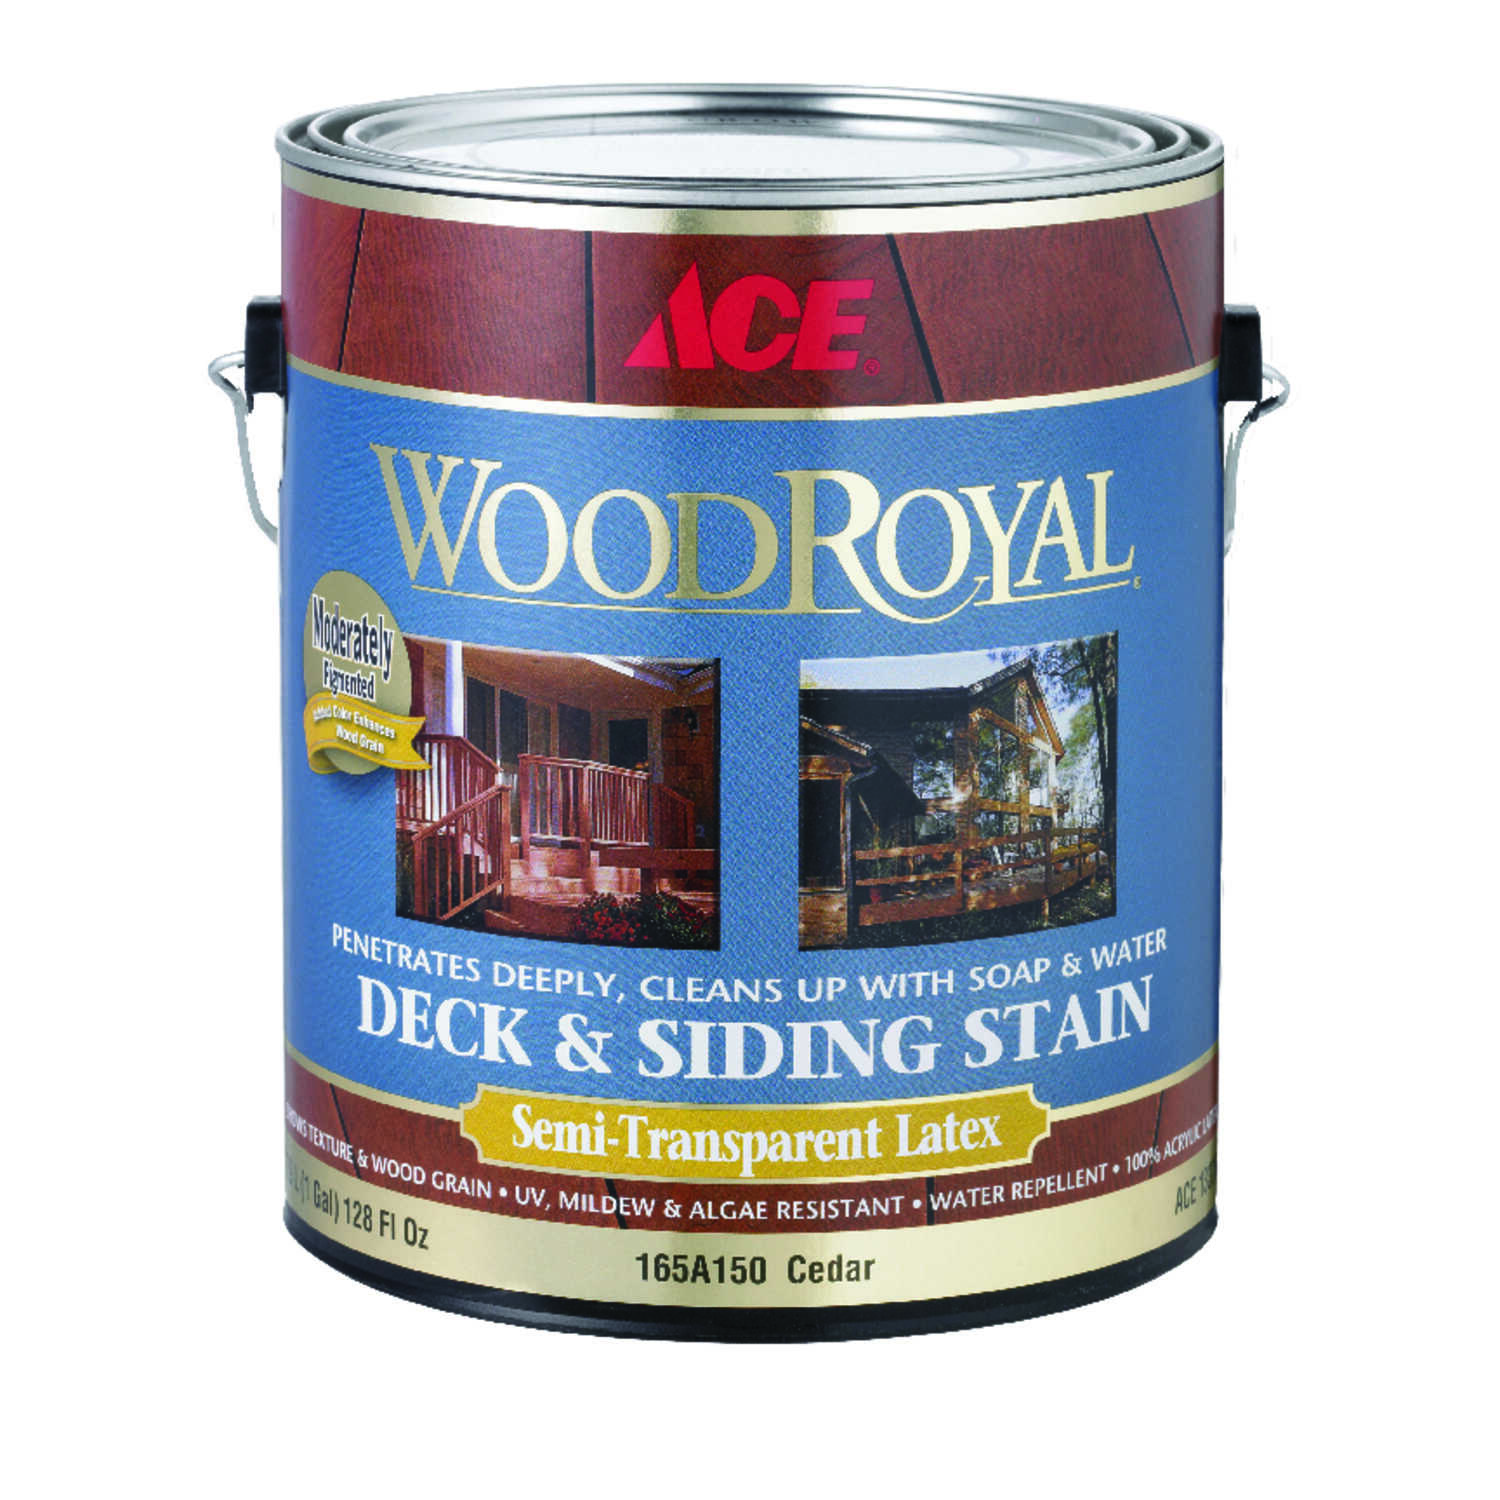 Ace  Wood Royal  Semi-Transparent  Cedar  Acrylic  Deck and Siding Stain  1 gal.